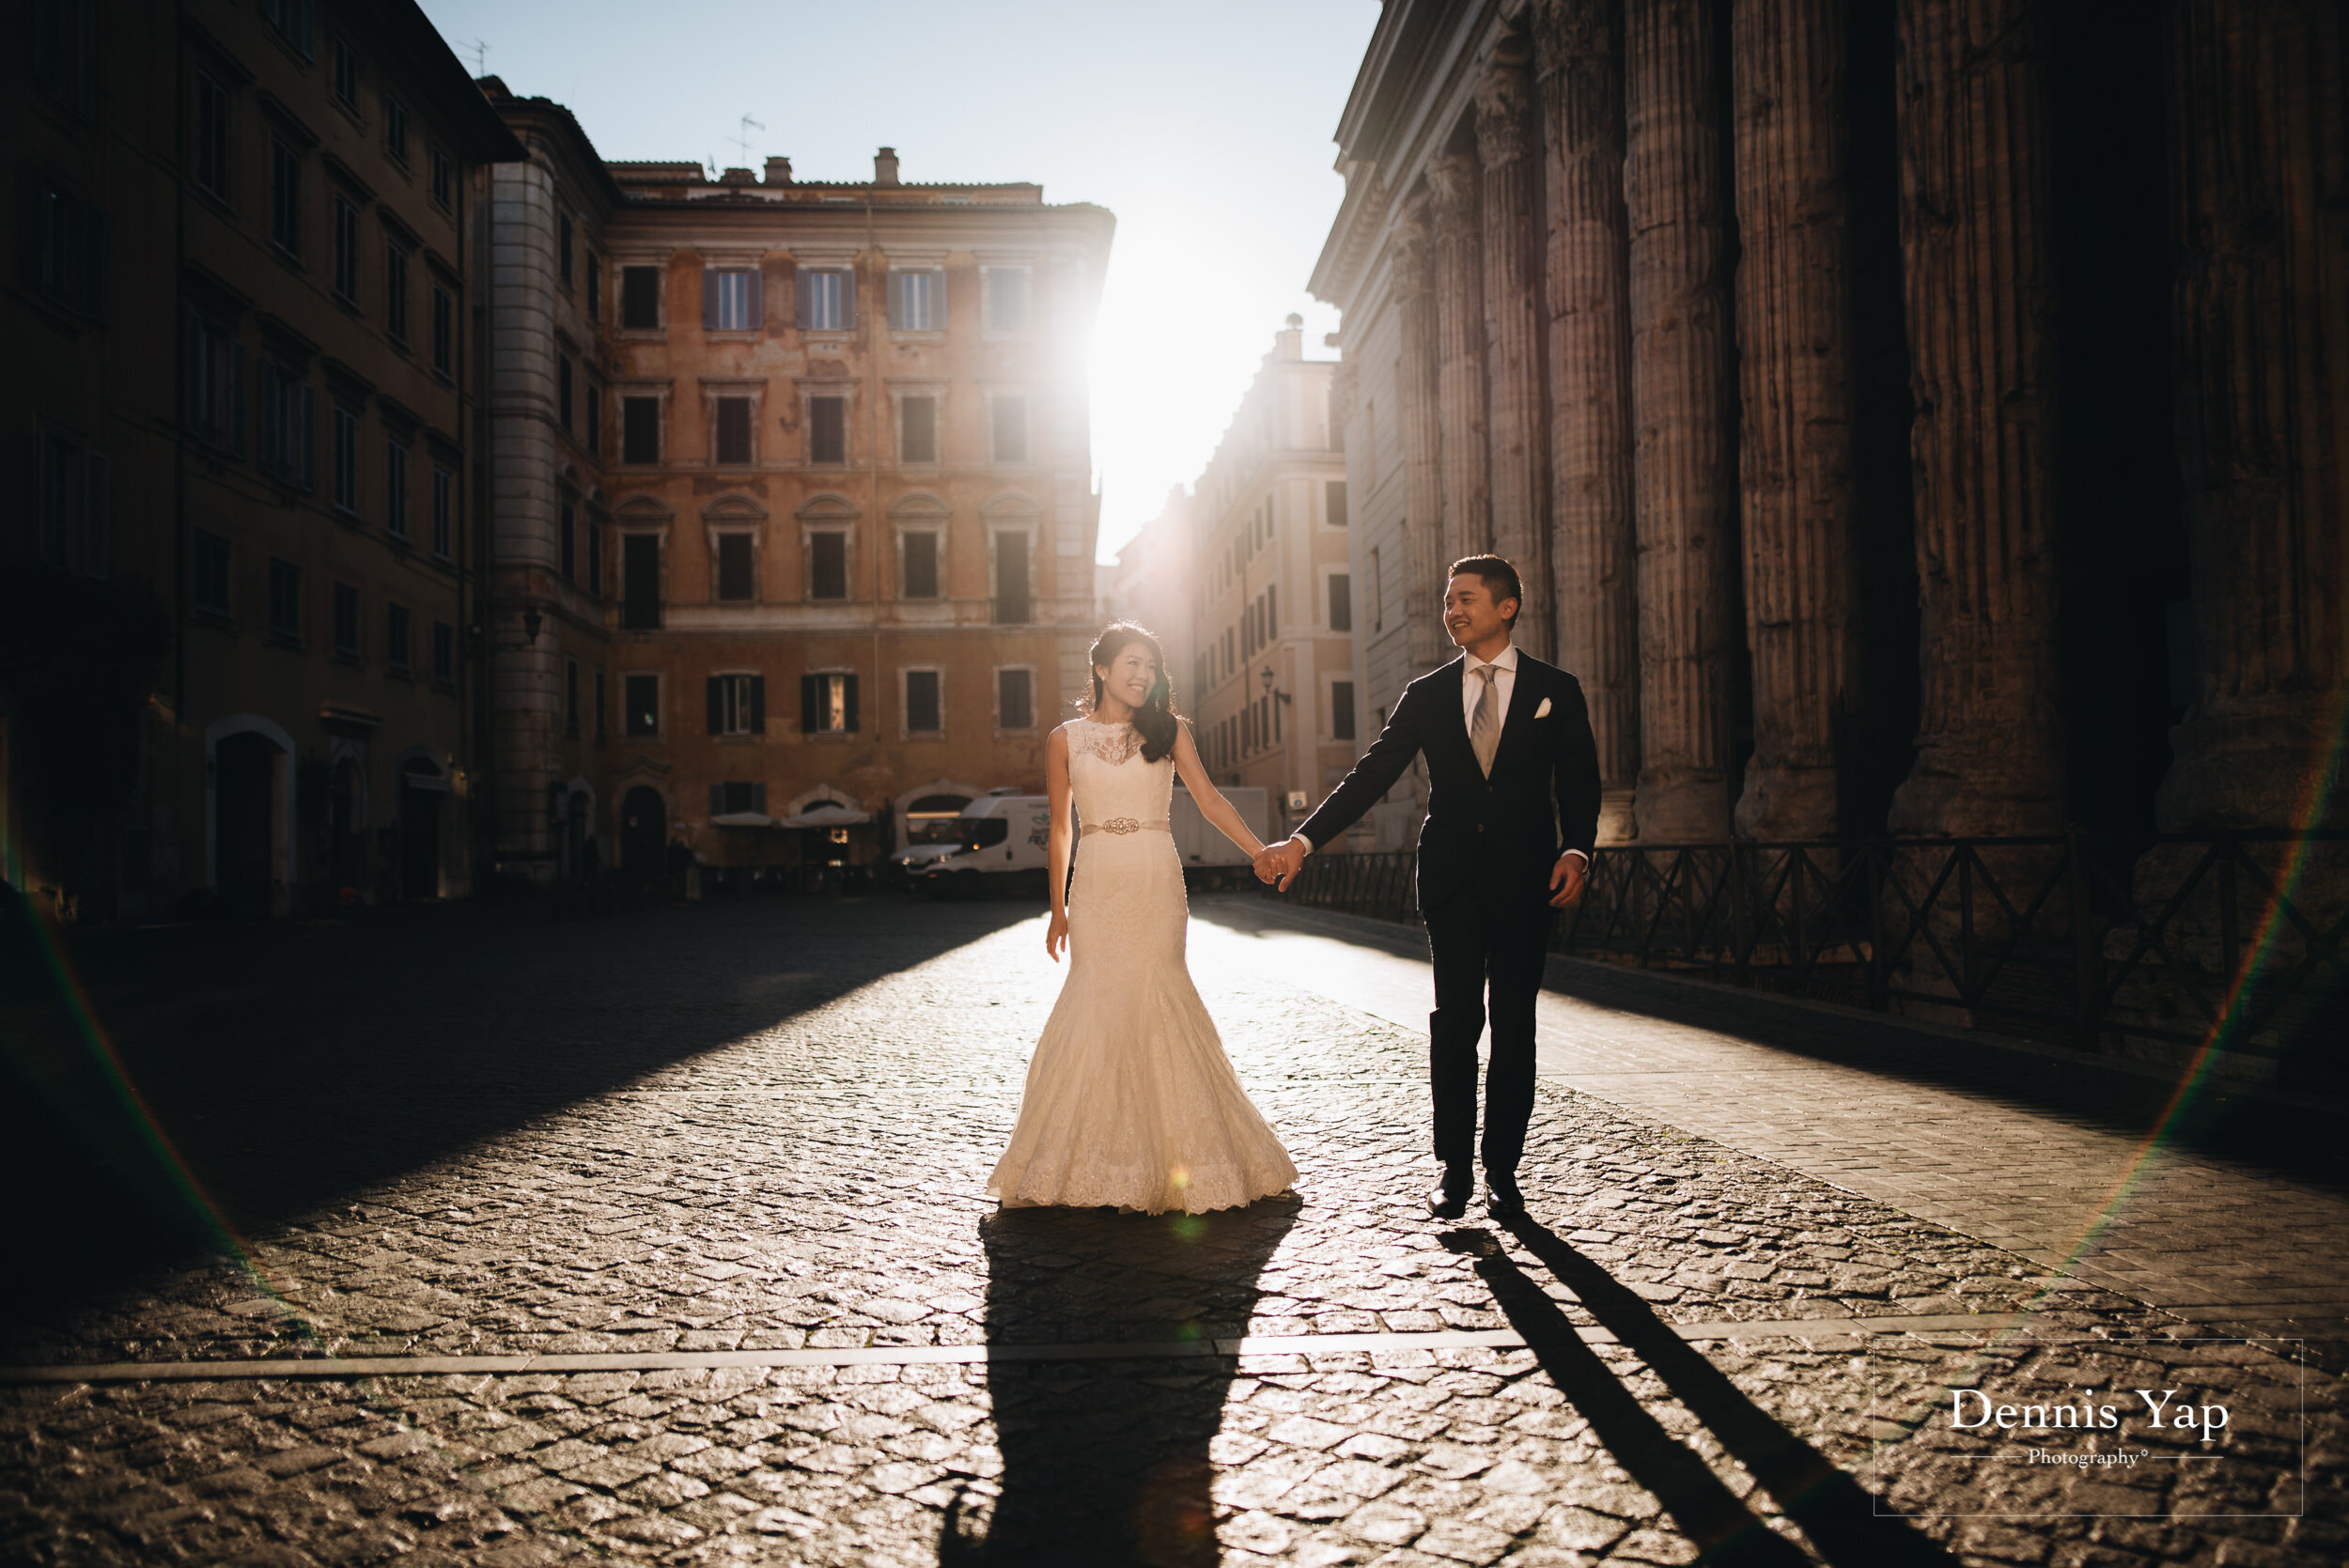 alex chloe pre wedding rome italy dennis yap photography overseas portrait classic beloved-114.jpg